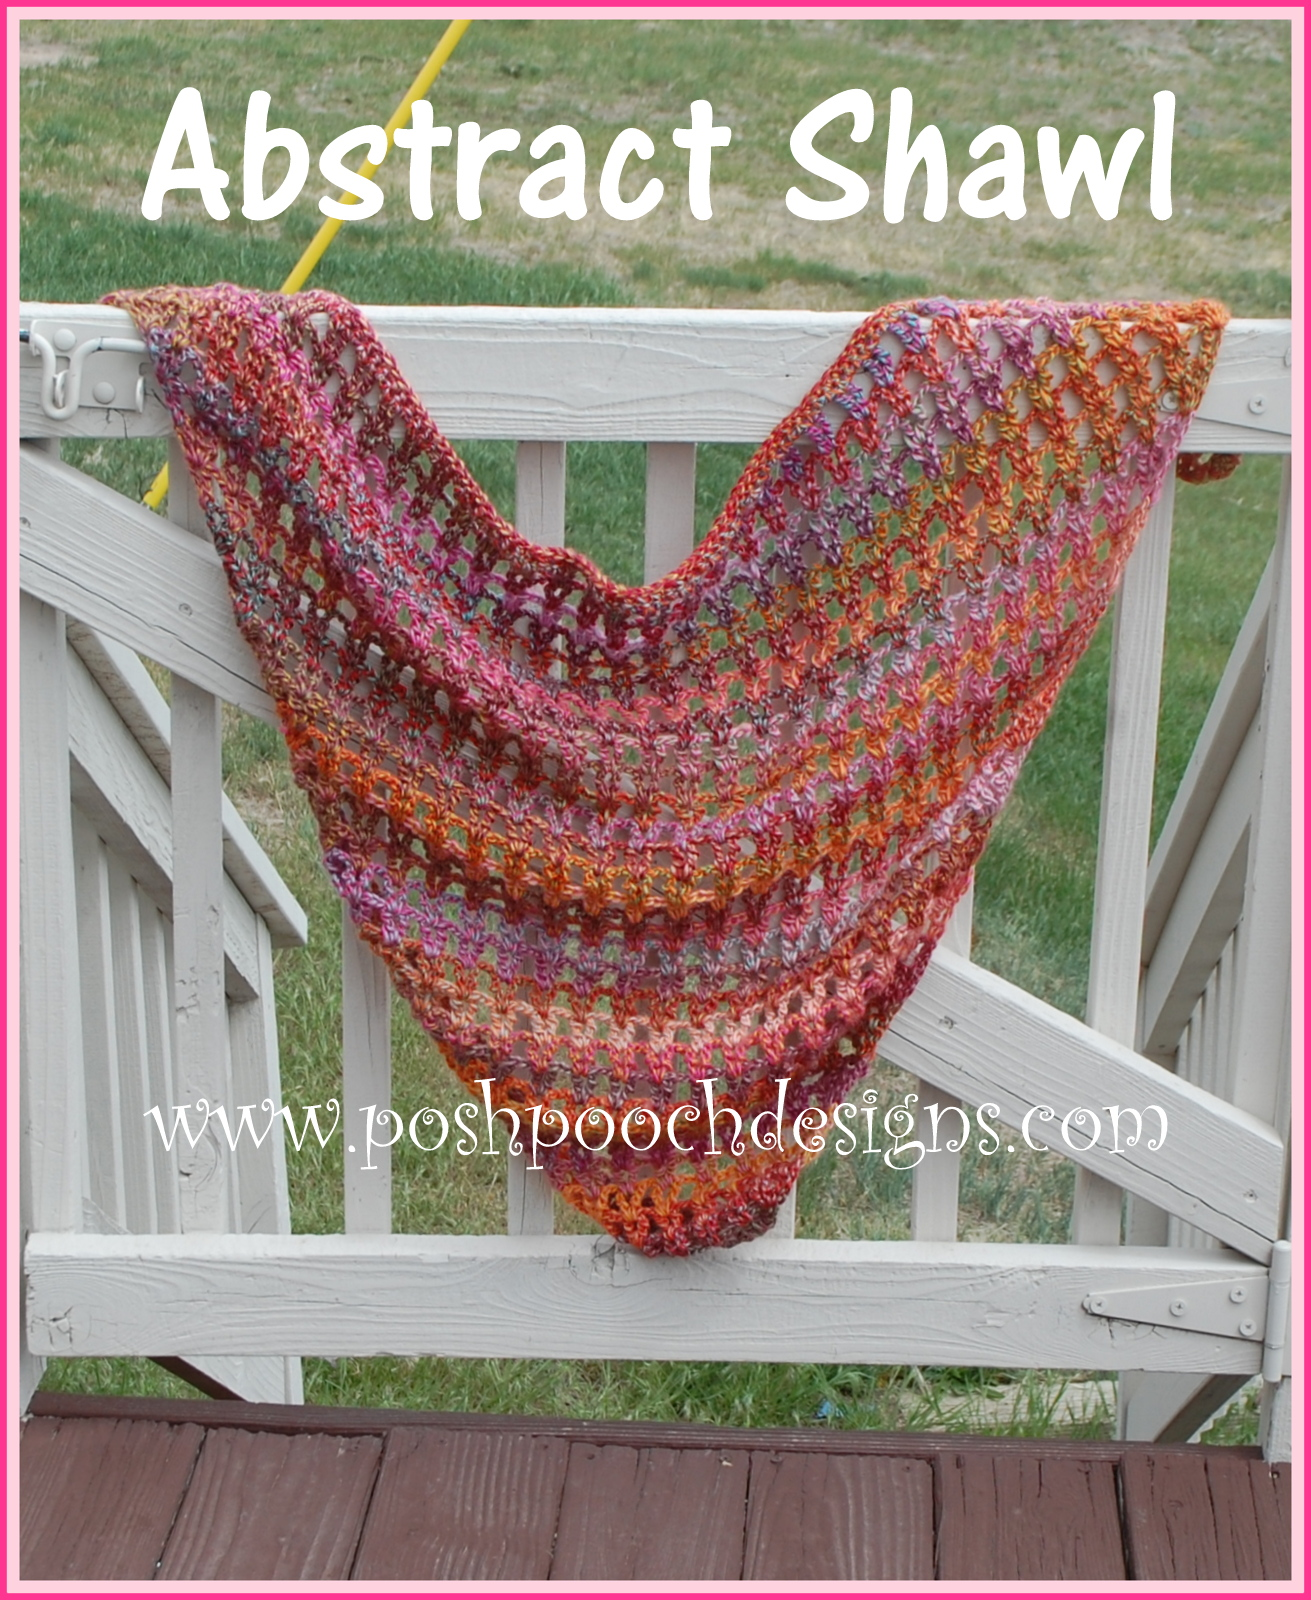 Crochet Patterns Using Caron Cakes : Posh Pooch Designs Dog Clothes: Abstract Shawl Made with ...